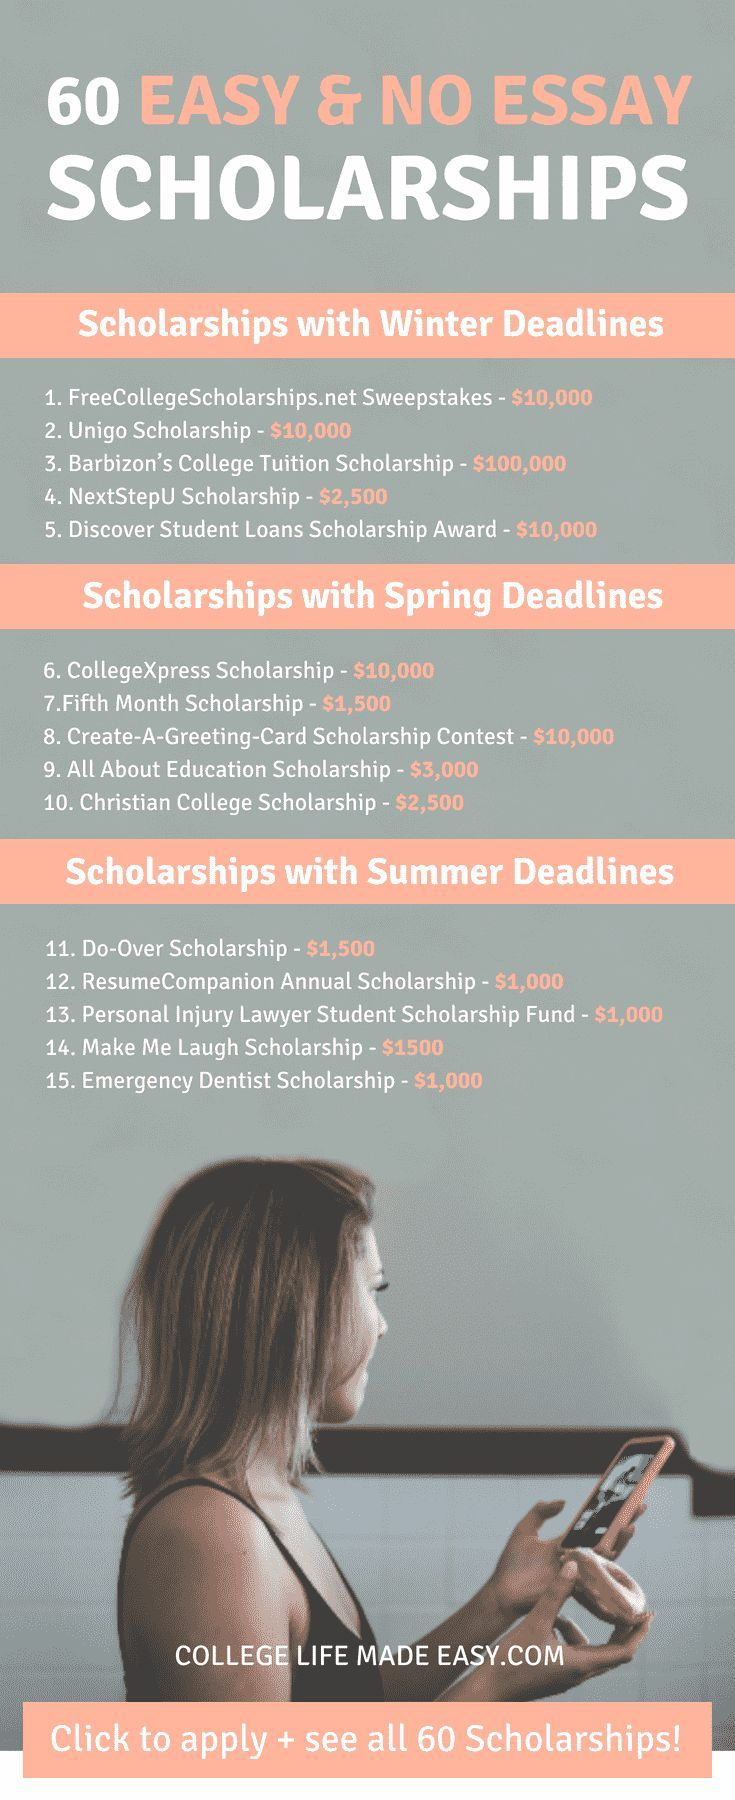 No Essay Scholarships To Apply For On Your Phone In   This List Of No Essay Aka Easy Scholarships Is Going To Be A Life Saver  For Me I Need To Get On Top Of Applying For As Many As I Can